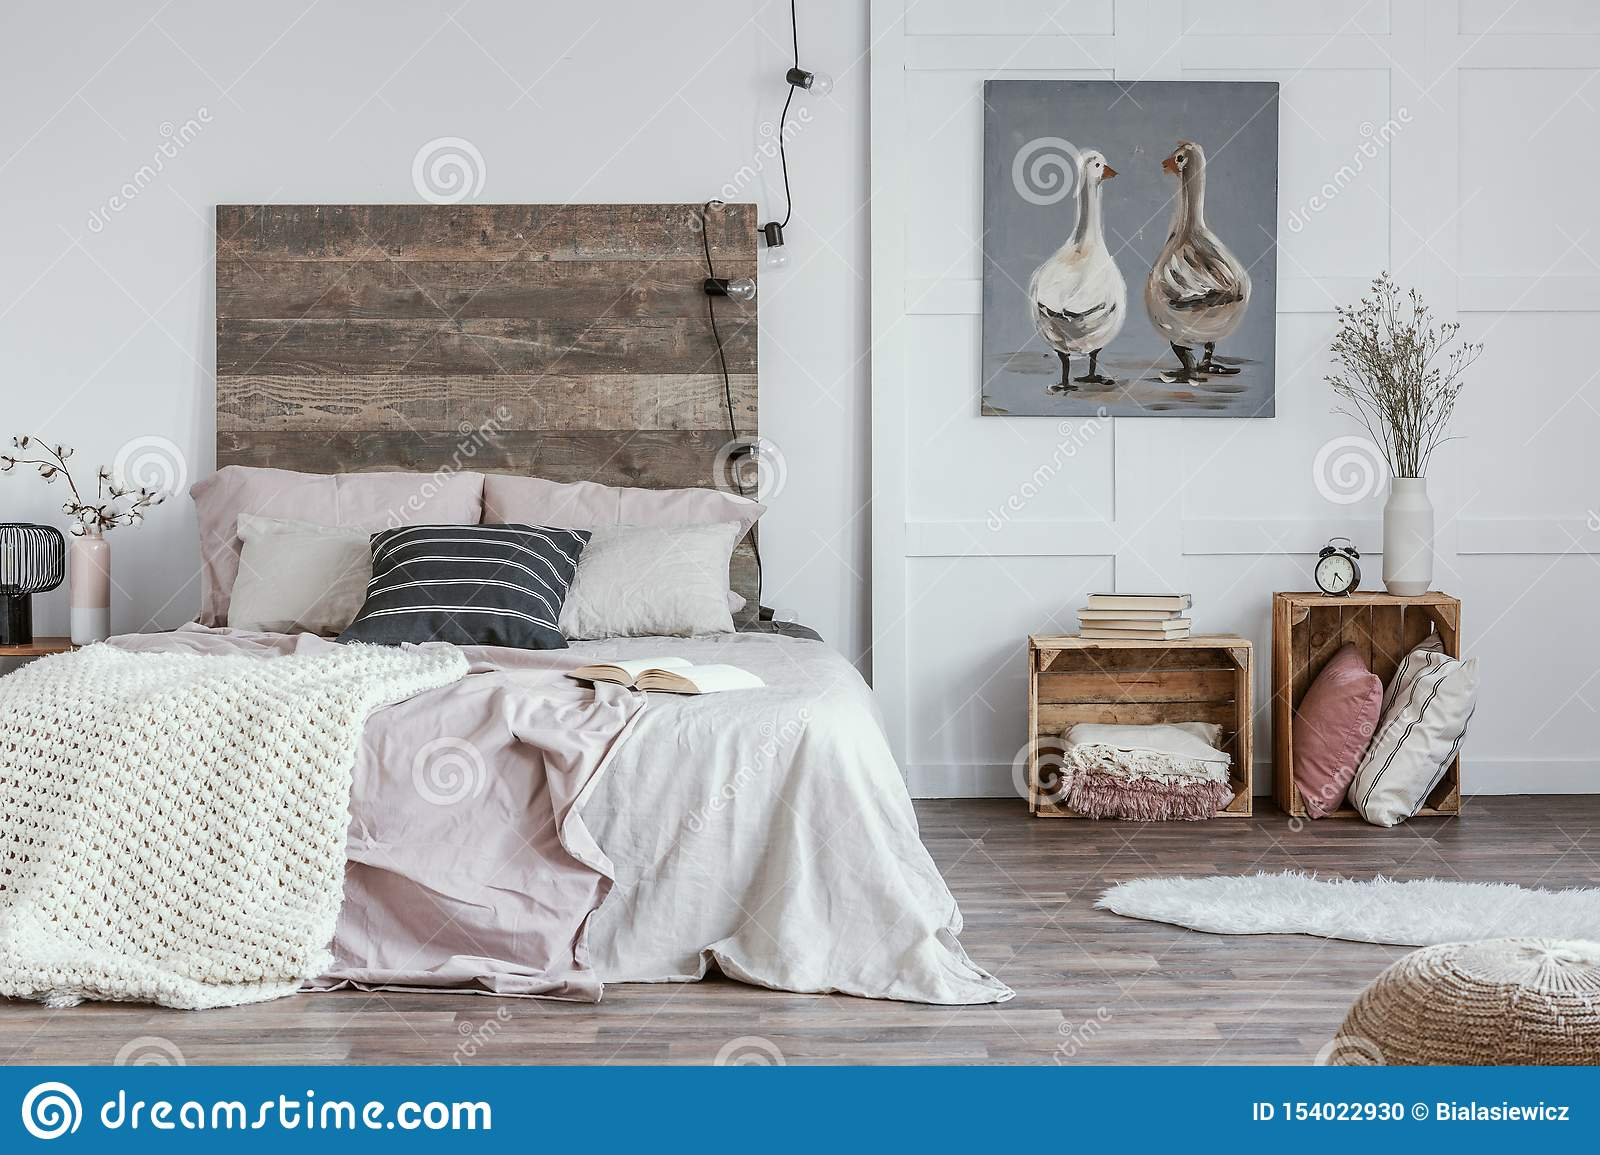 Spacious Feminine Bedroom Interior With Rustic Furniture White Walls Wooden Crates And Oil Painting Of Animals Real Photo Stock Photo Image Of Furniture Decor 154022930